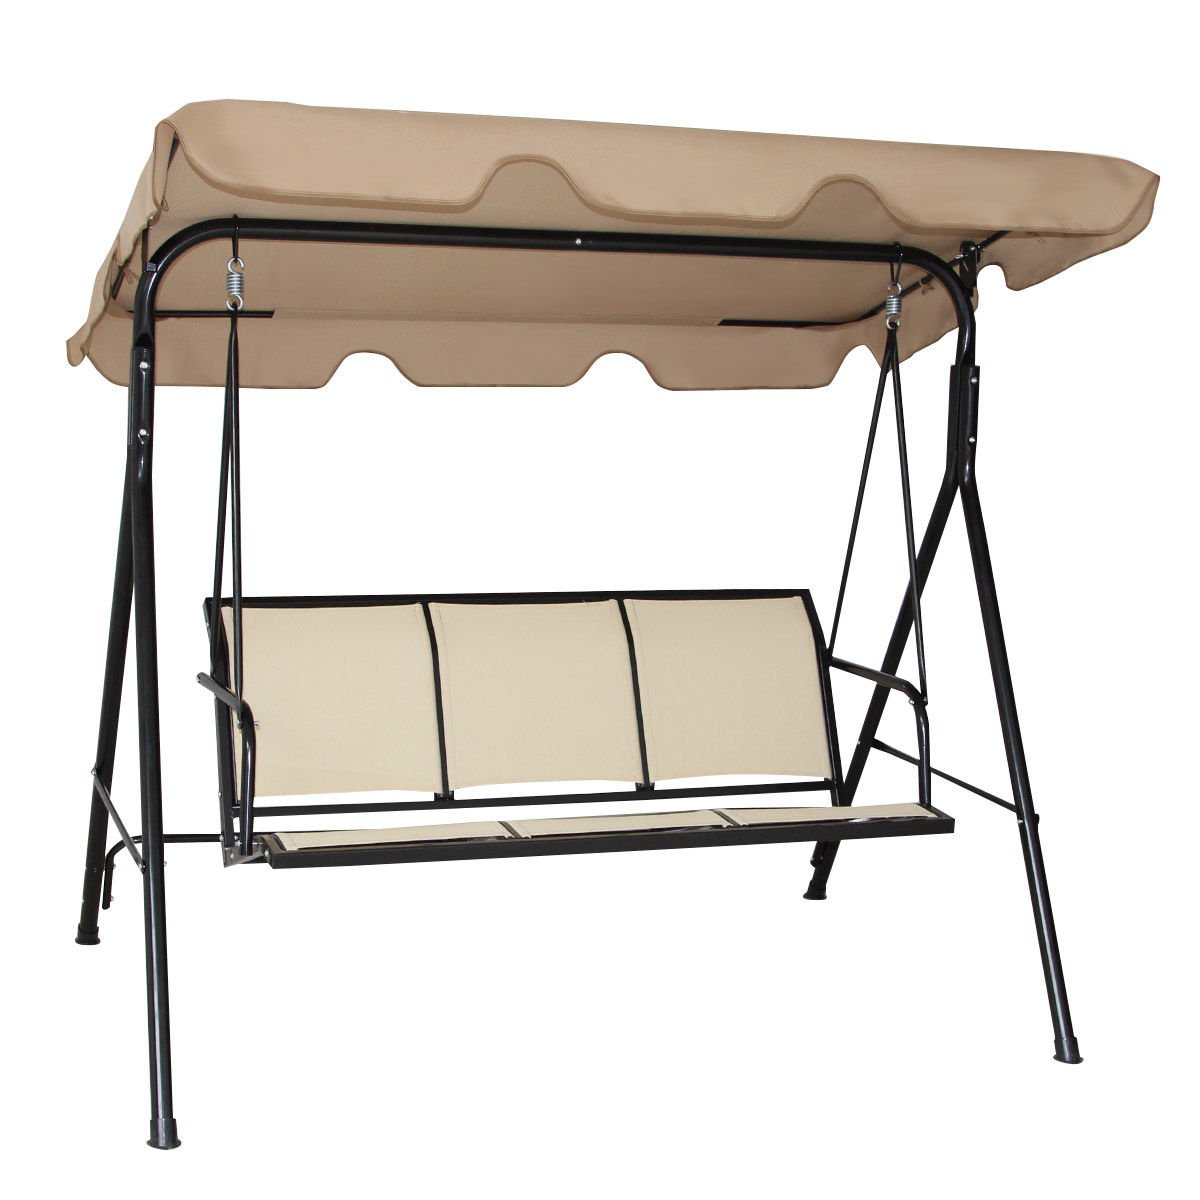 Light Brown Patio Textile Fiber Swing Canopy 3 Person Seat Capacity 528 Llbs by DermaPAD